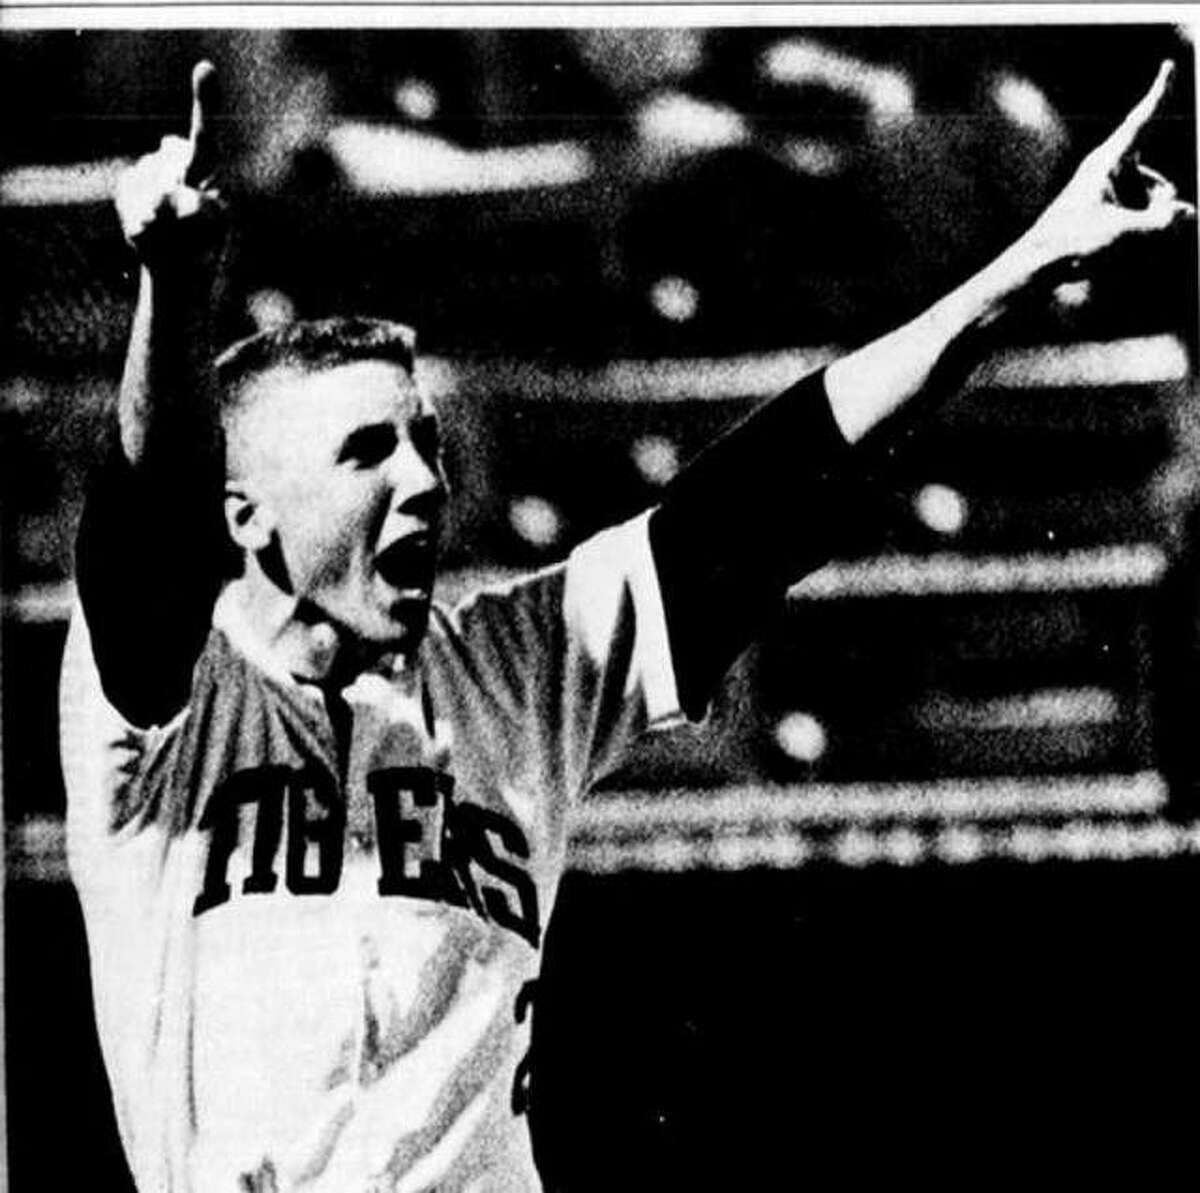 Edwardsville's John Droste celebrates after the Tigers beat Joliet Catholic in 1990 to win the Class AA baseball championship.